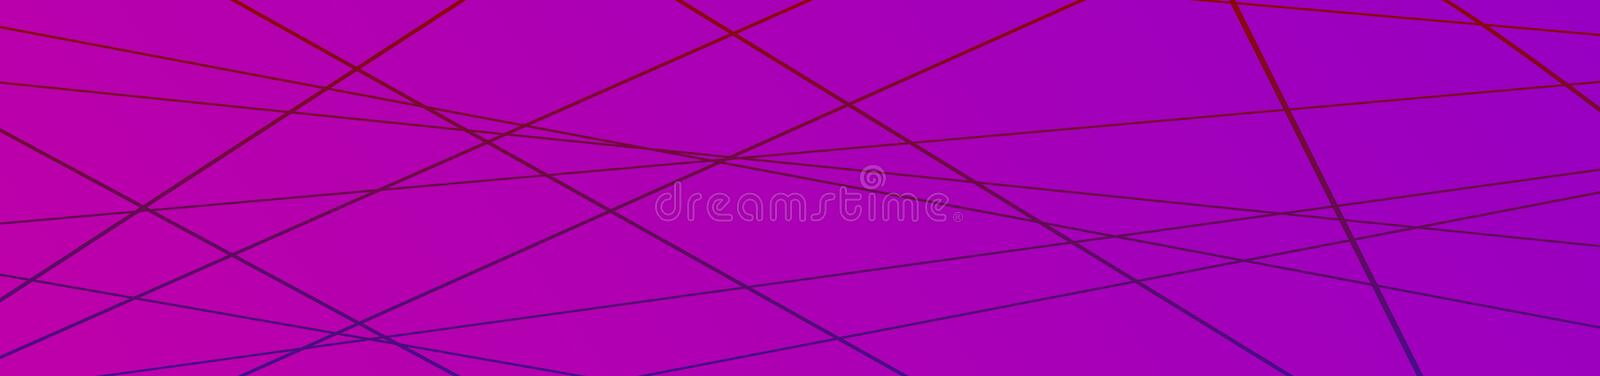 Minimalist geometric background. Banner with Trendy thin line abstract shapes composition royalty free stock image